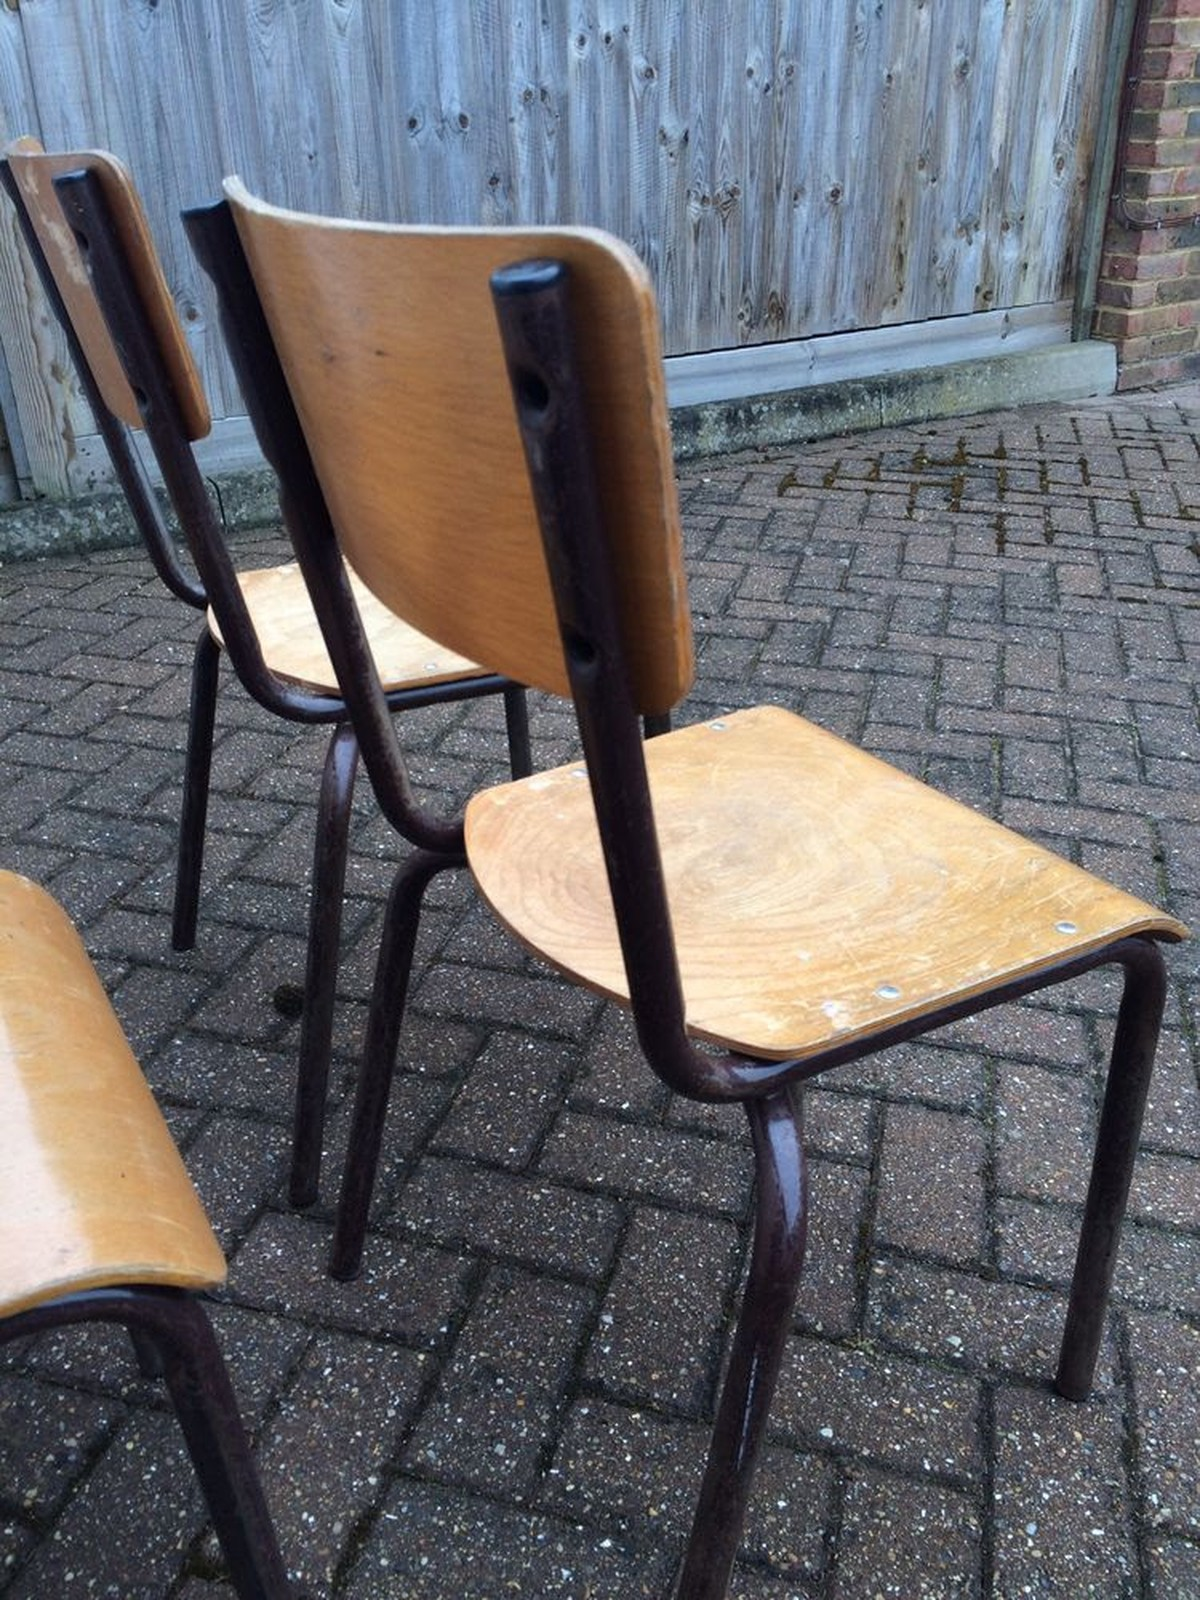 Wooden School Chairs Secondhand Chairs And Tables Retro Vintage Or Antique